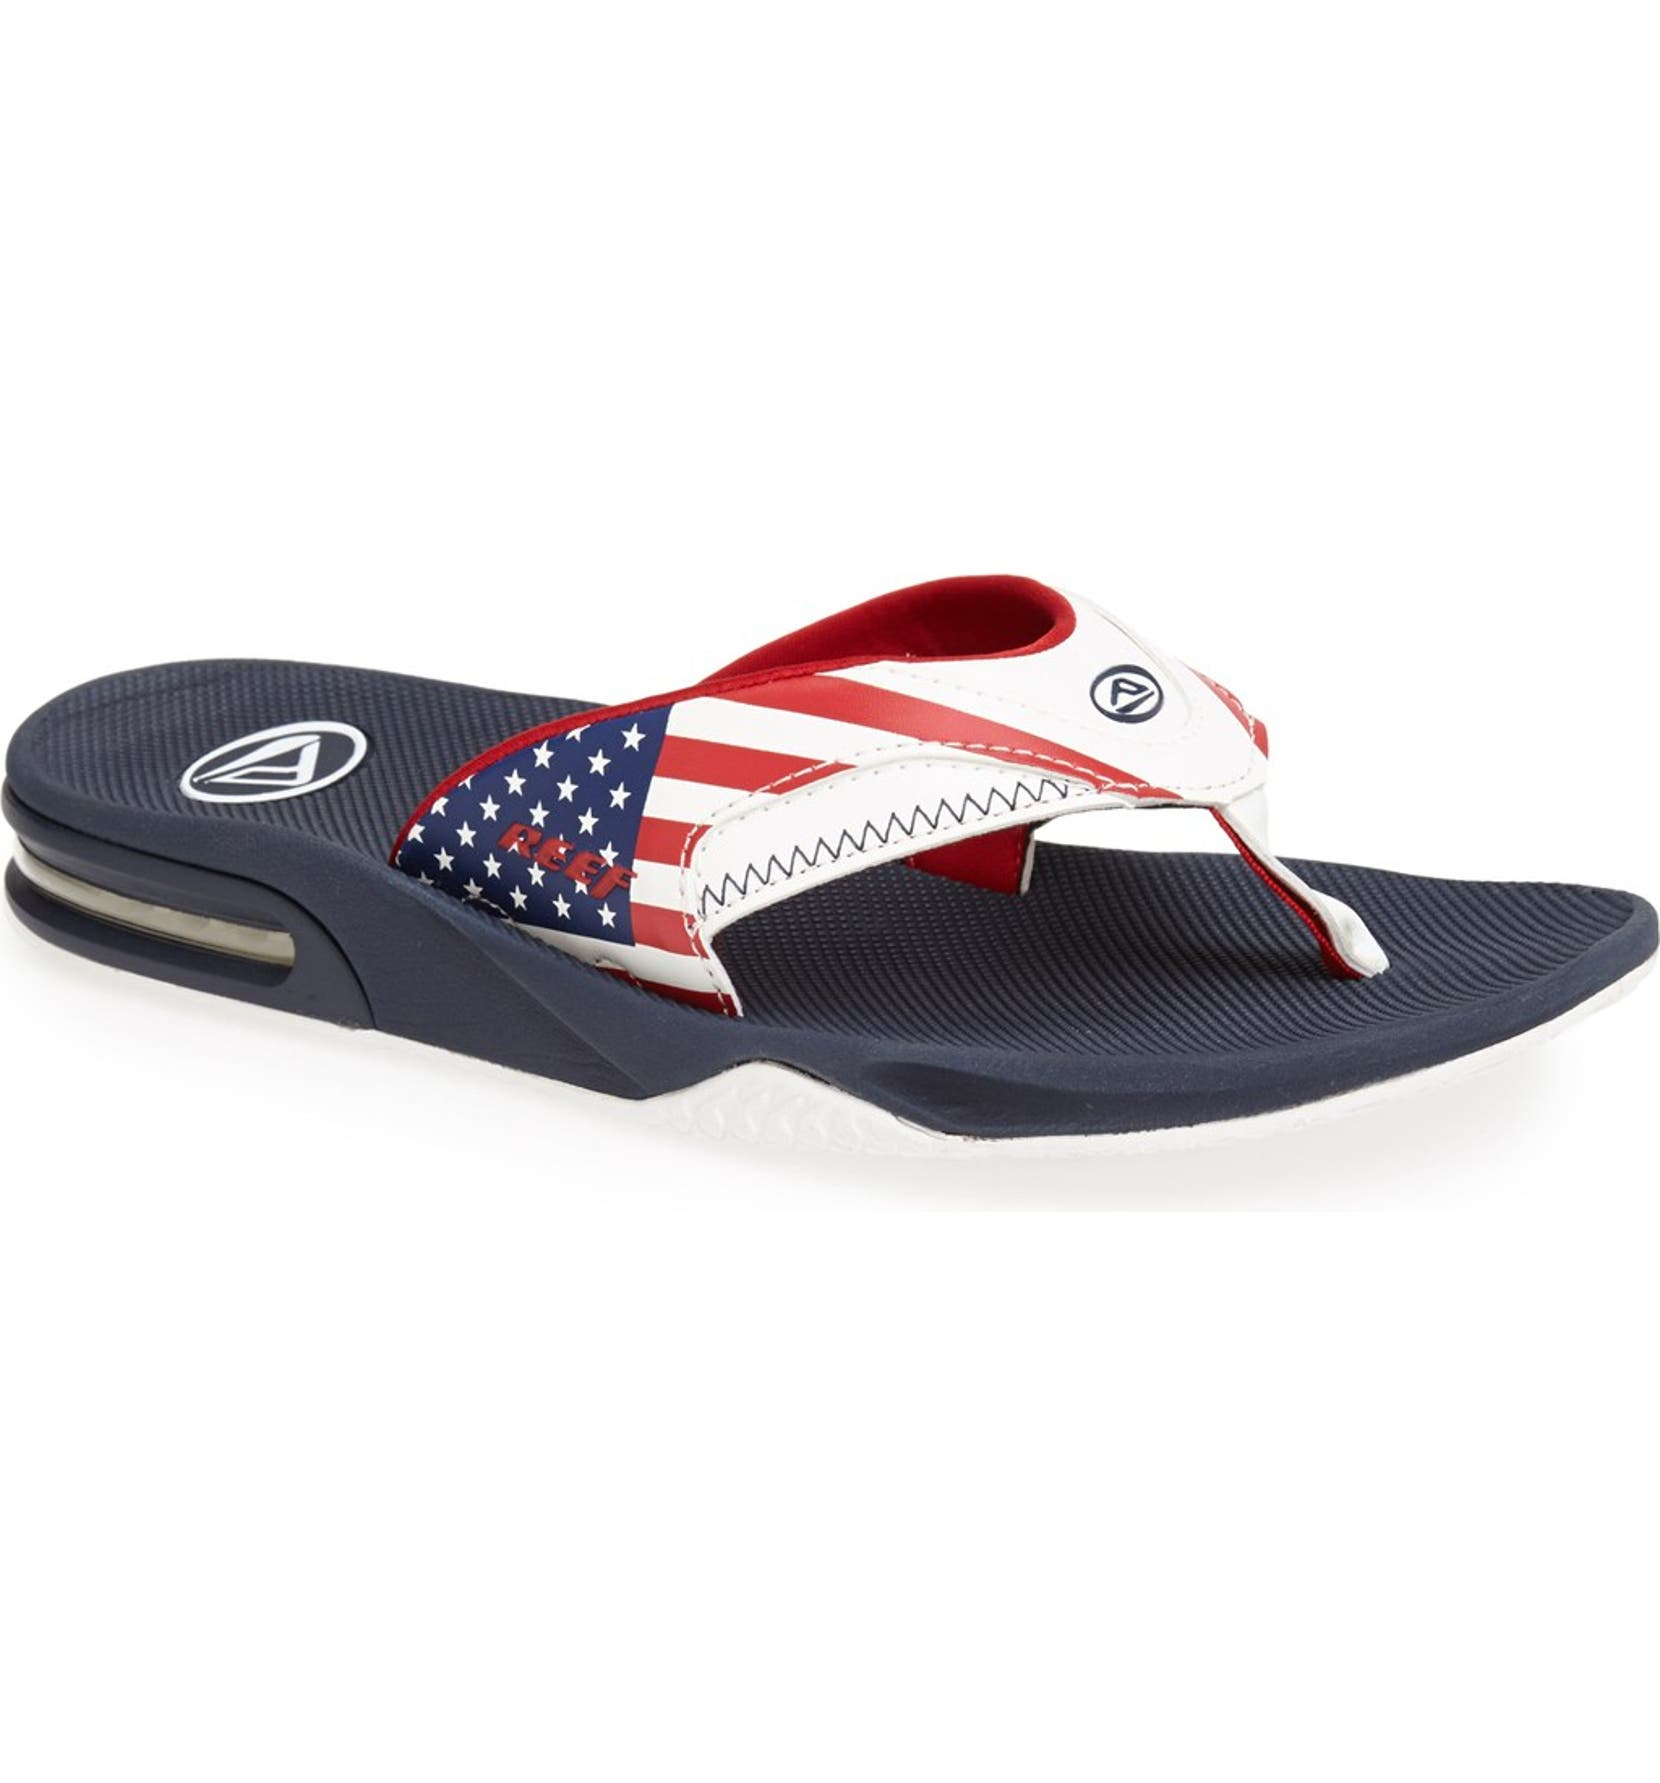 b916d368b07f Reef American Flag Flip Flops - About Flag Collections